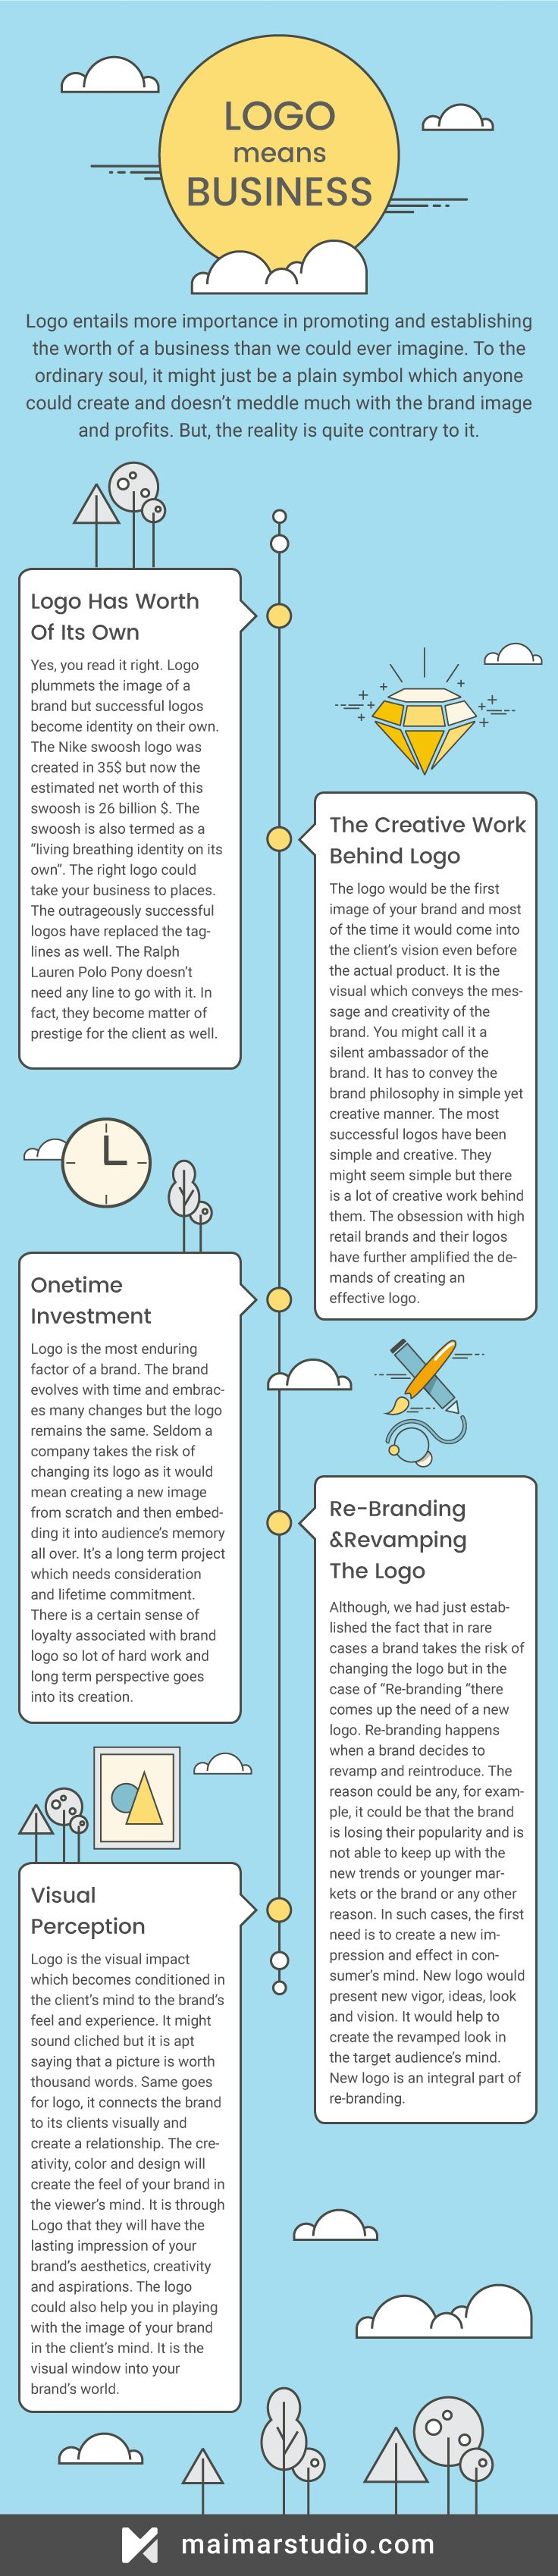 Logo means Business #logo #business #infographic